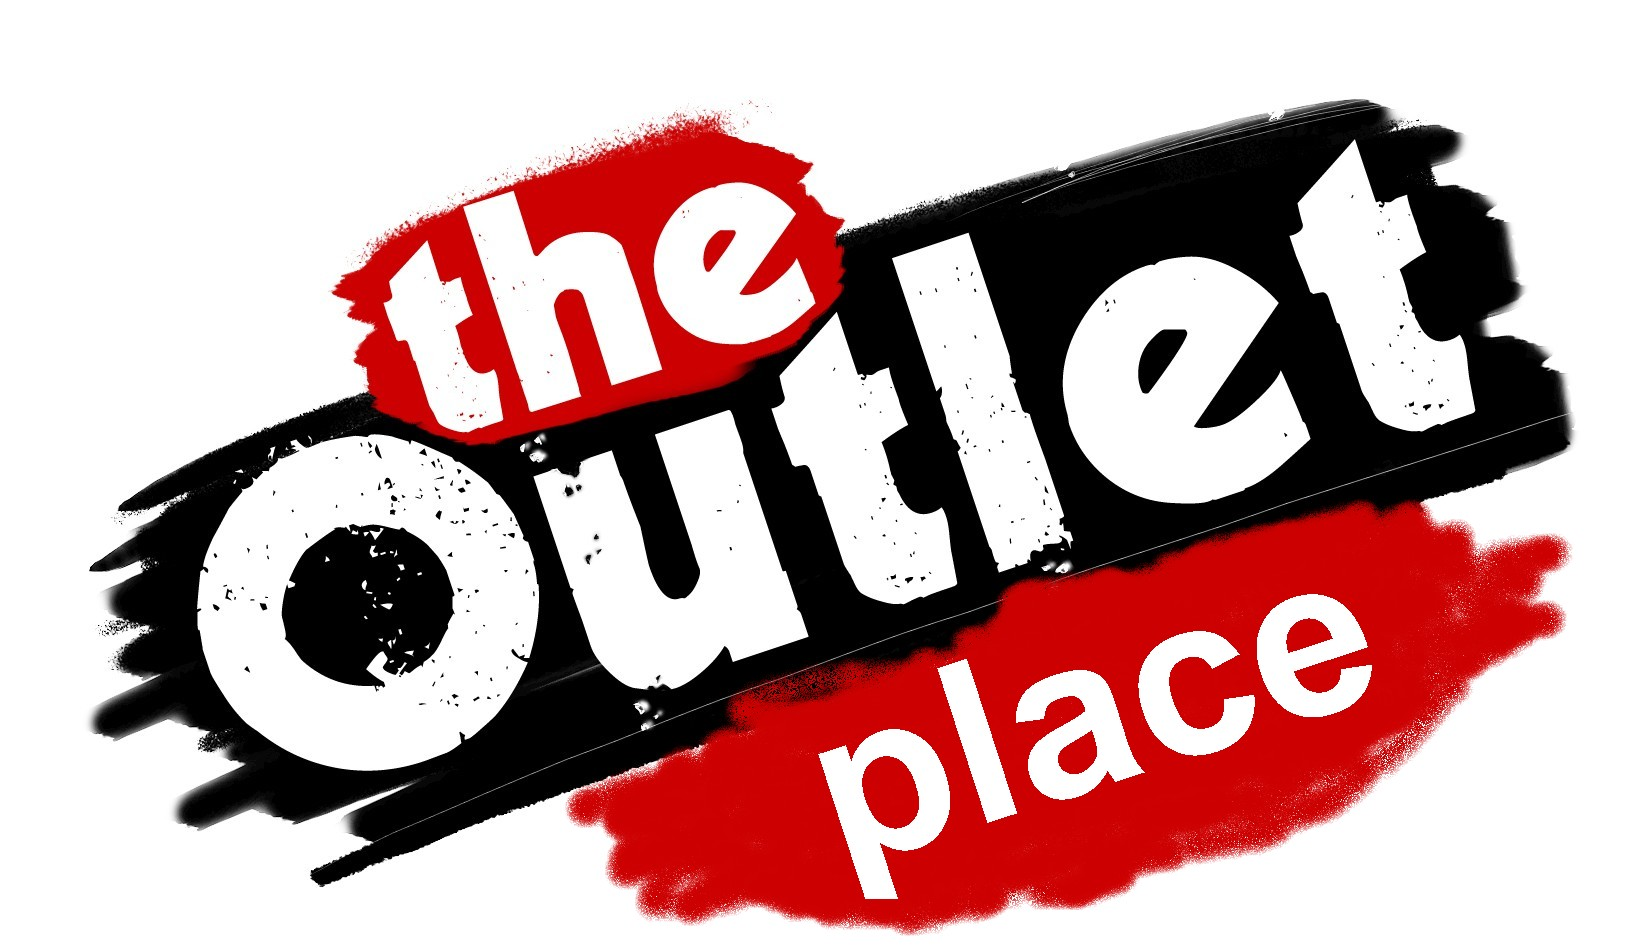 outlet_logo%201648%20x%20950.jpg